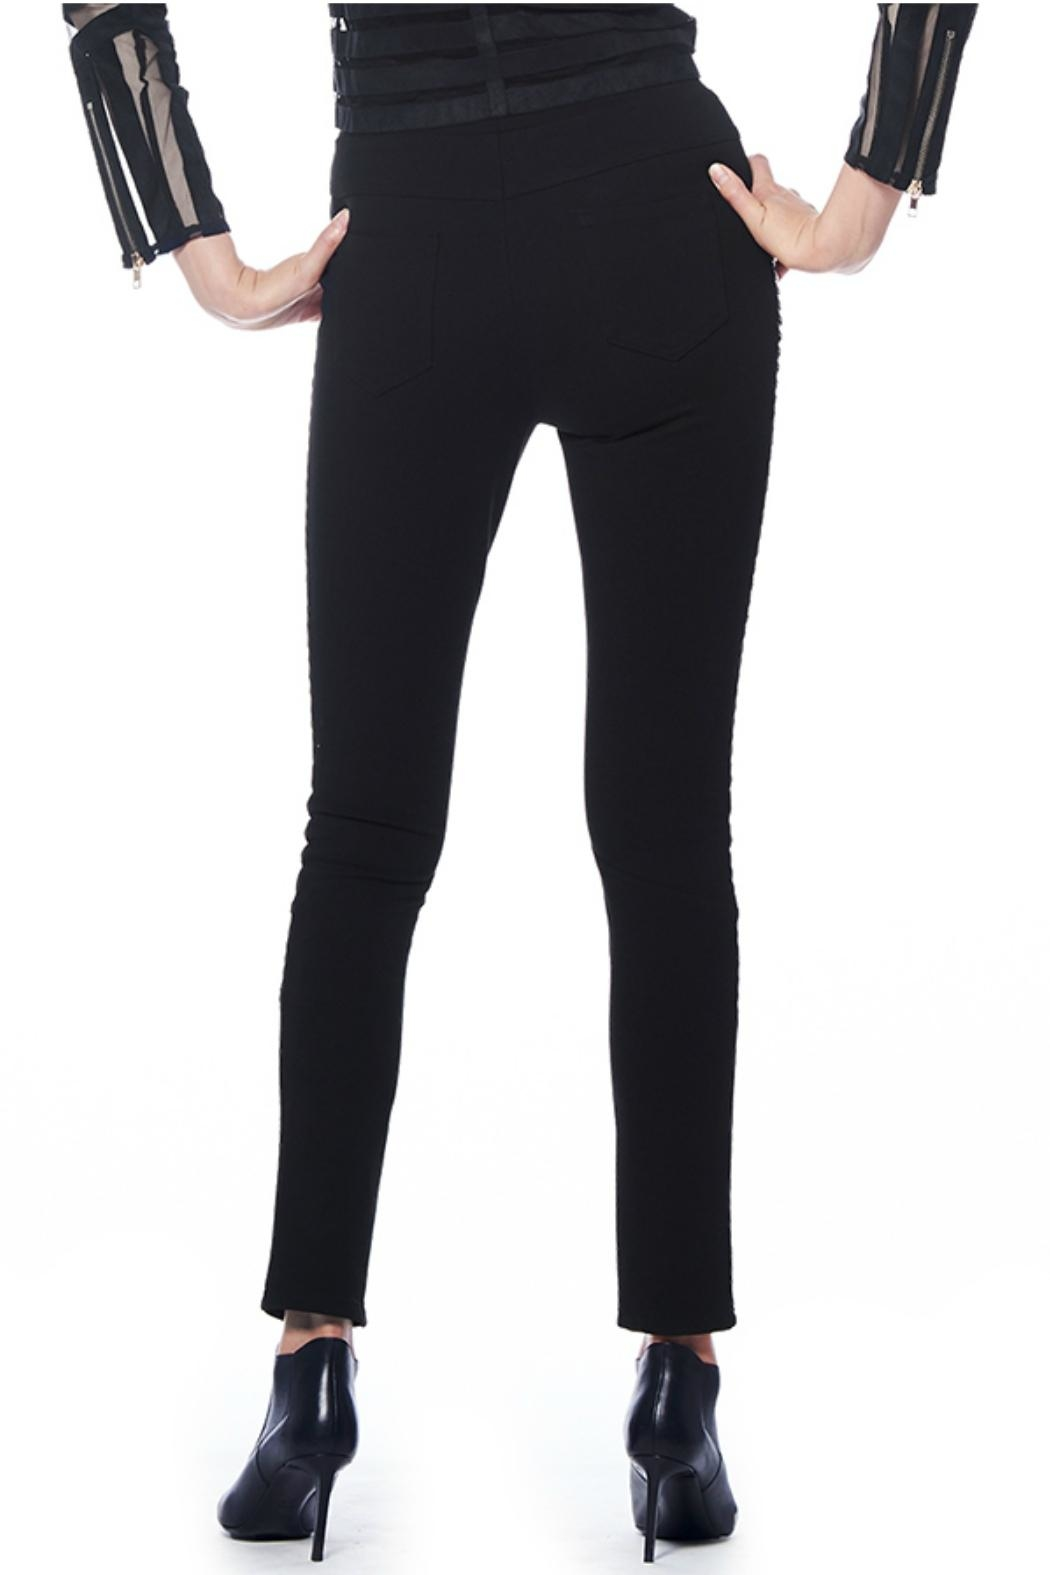 Gracia Leather Detail Pants - Side Cropped Image